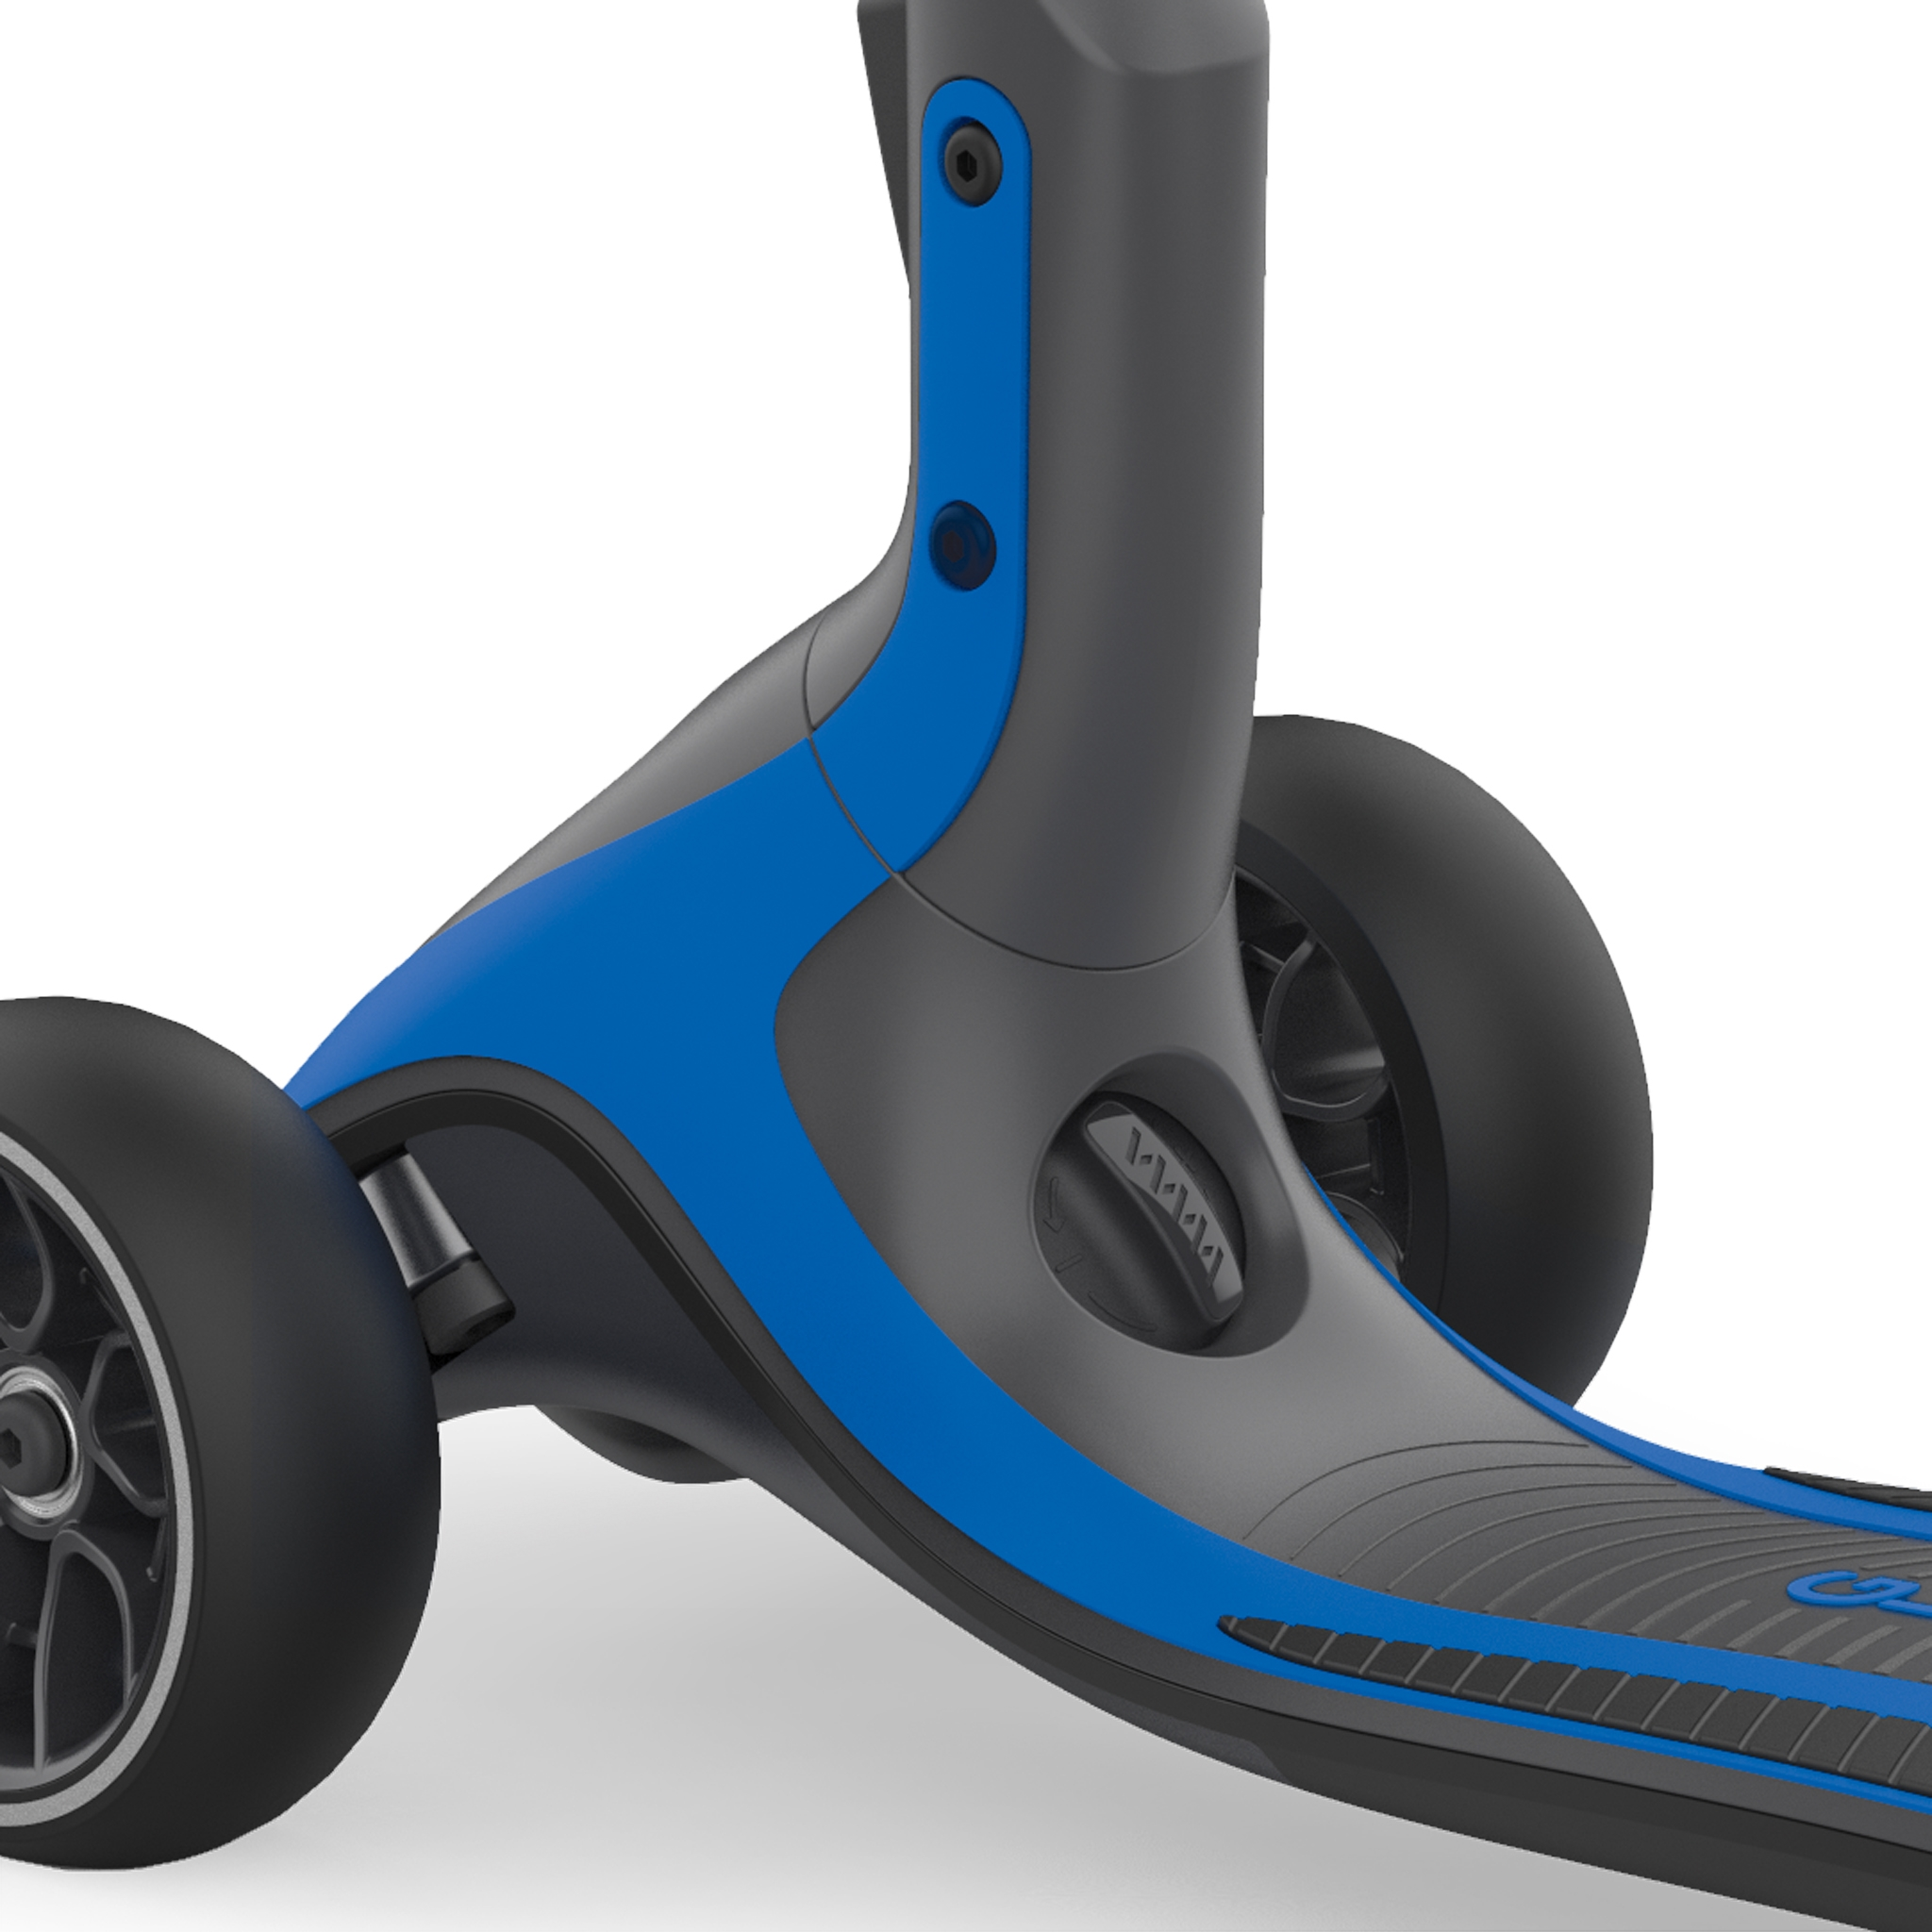 3 wheel foldable scooter for kids, teens and adults - Globber ULTIMUM 1